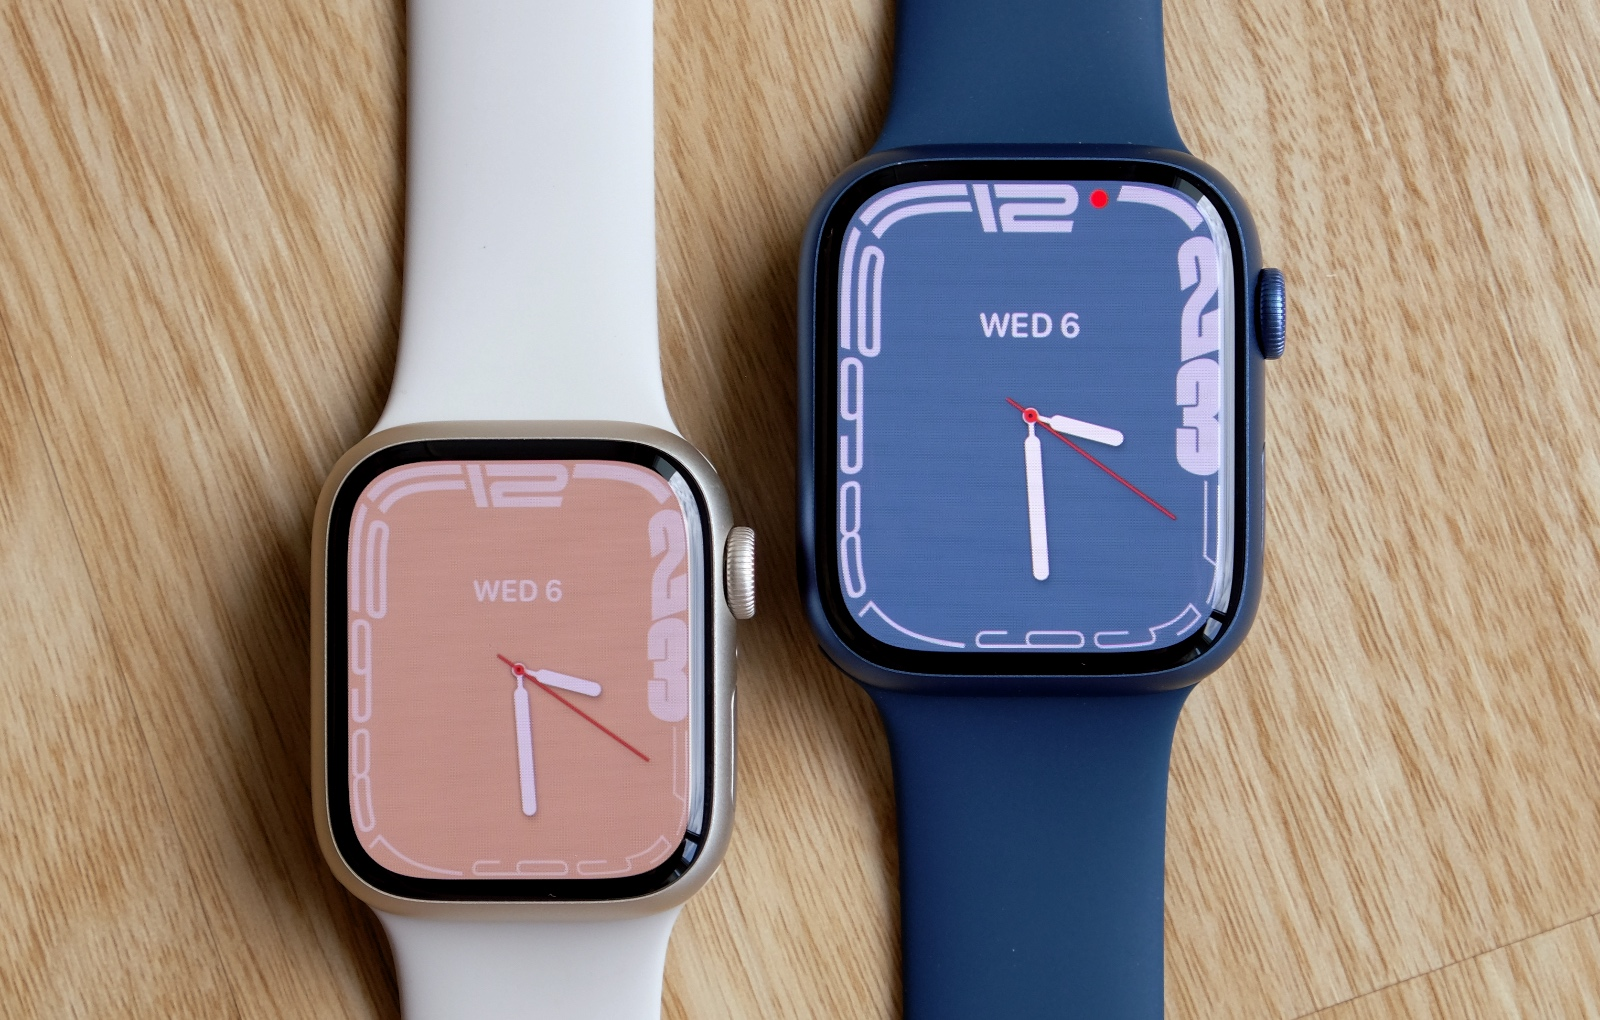 The smaller 41mm model is the on left and the larger 45mm model is on the right.